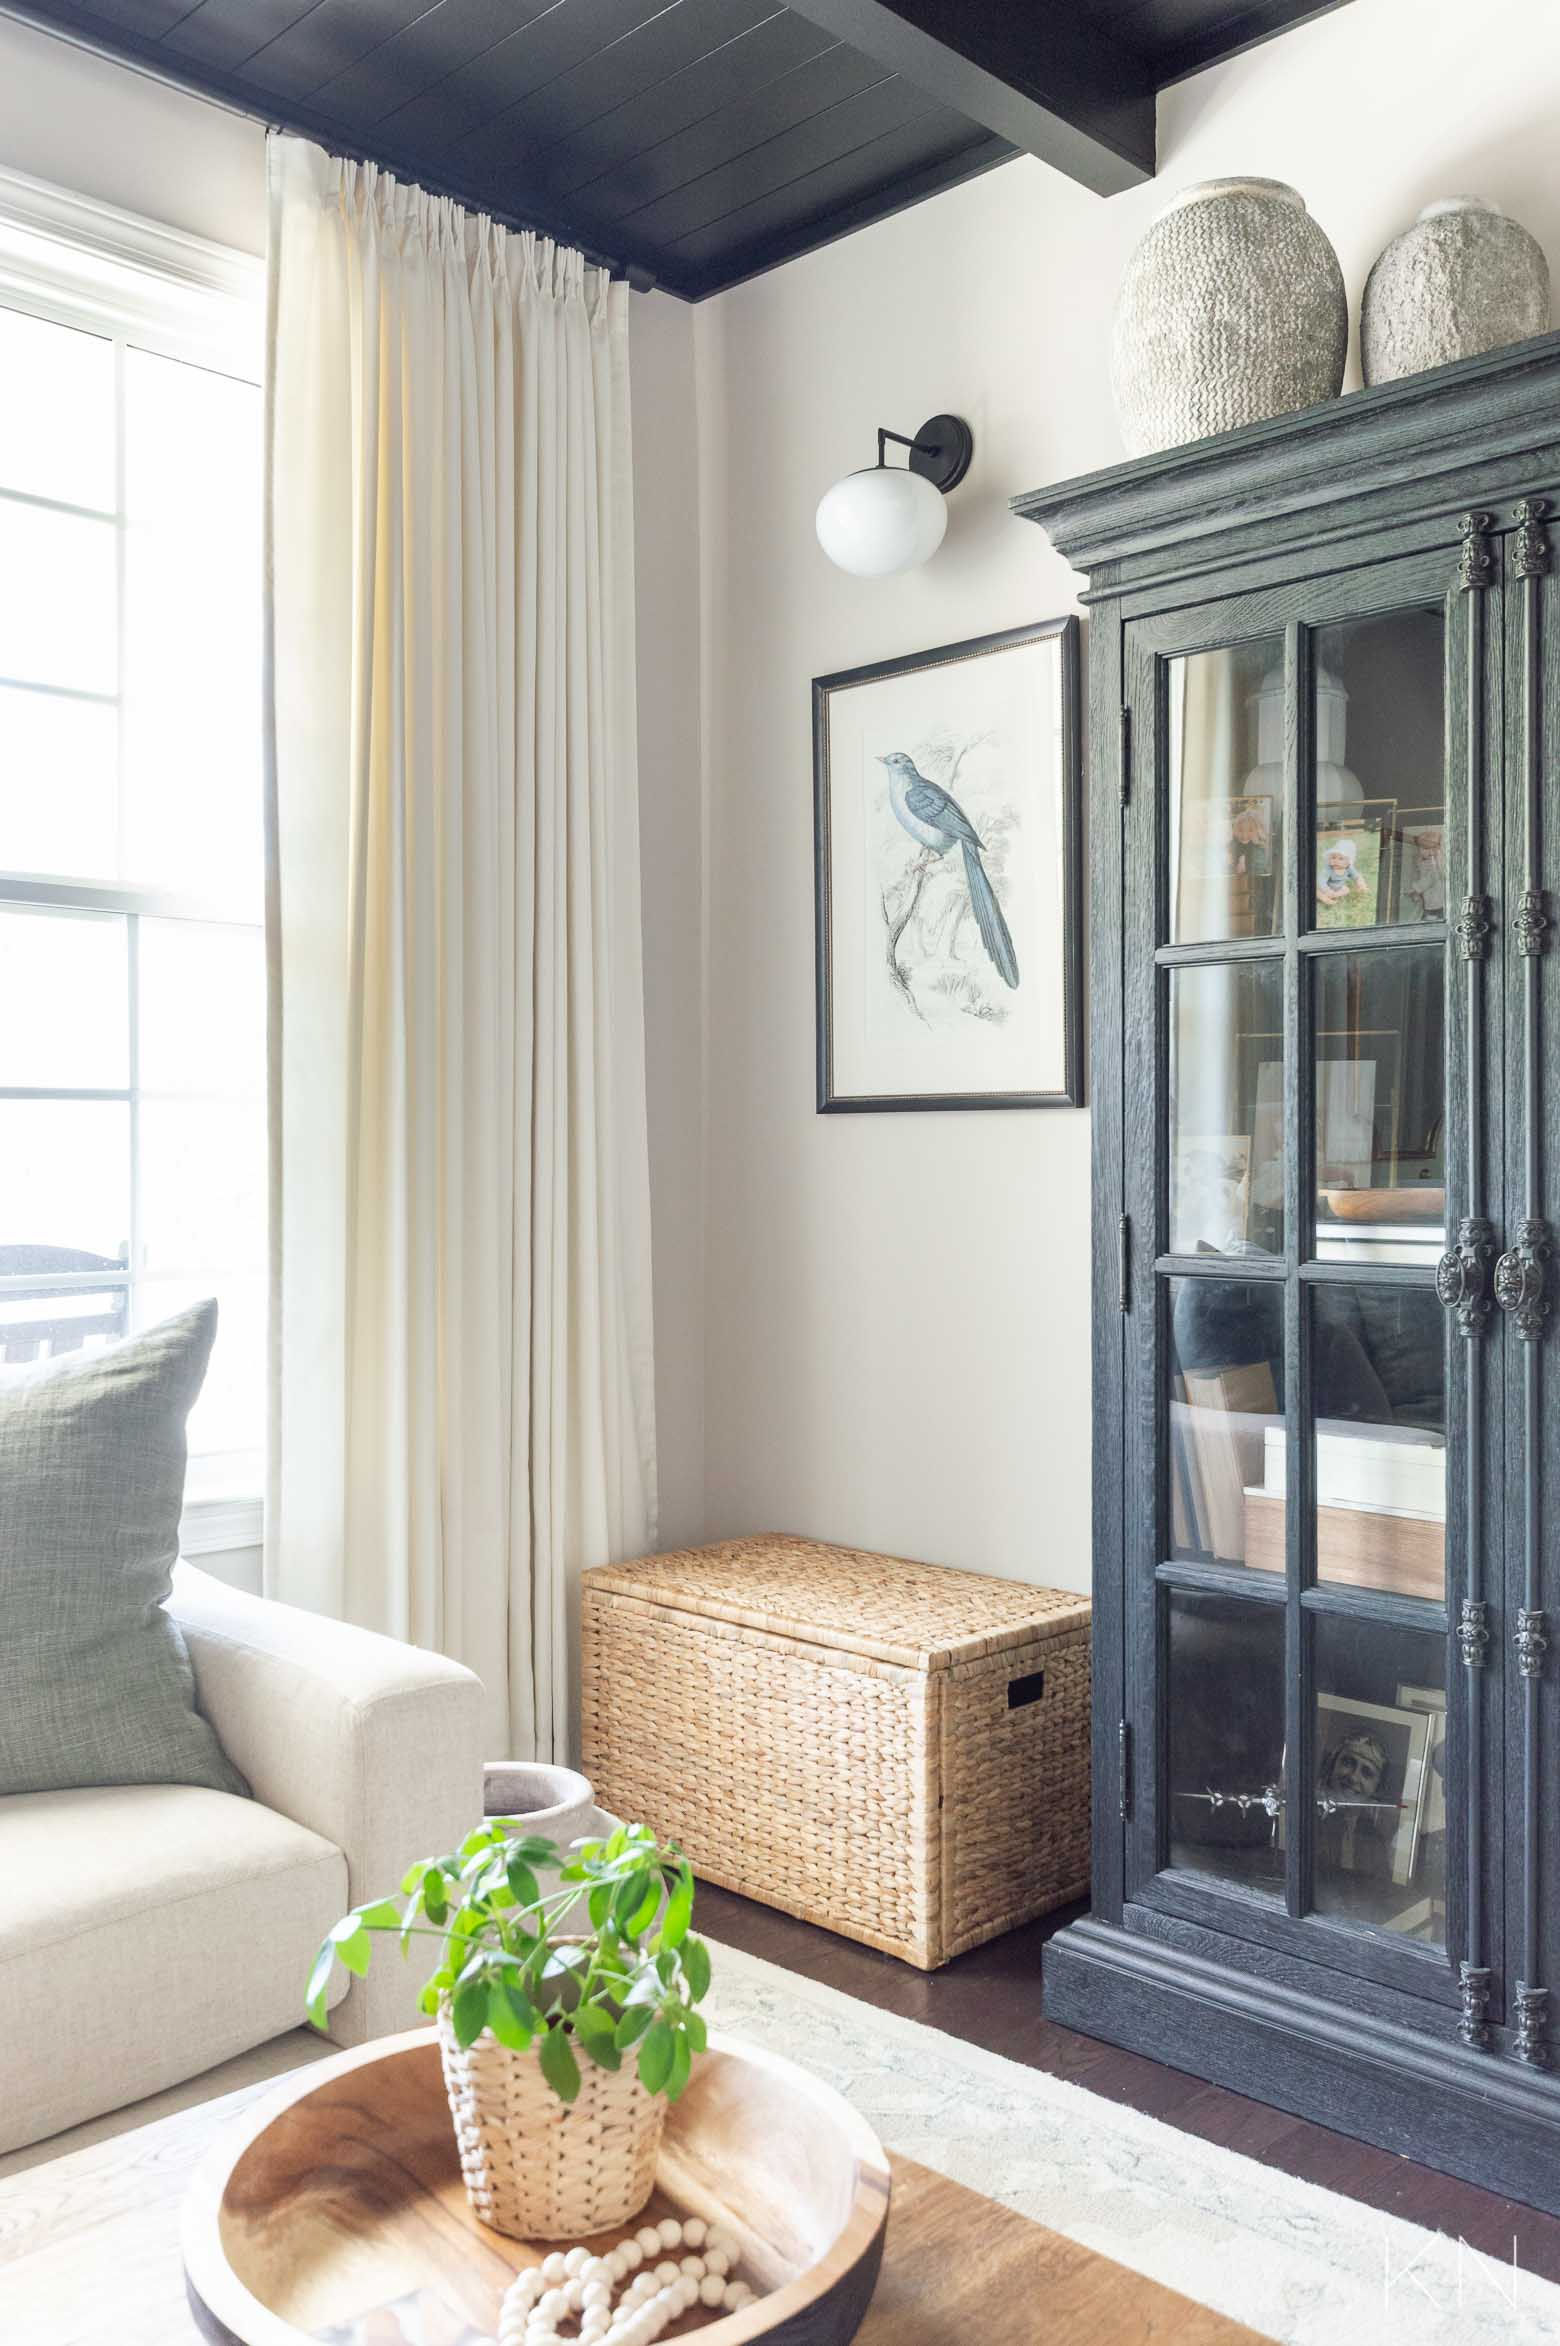 Conversation Room Reveal- Custom Pleated Drapes for a Dramatic Room Statement